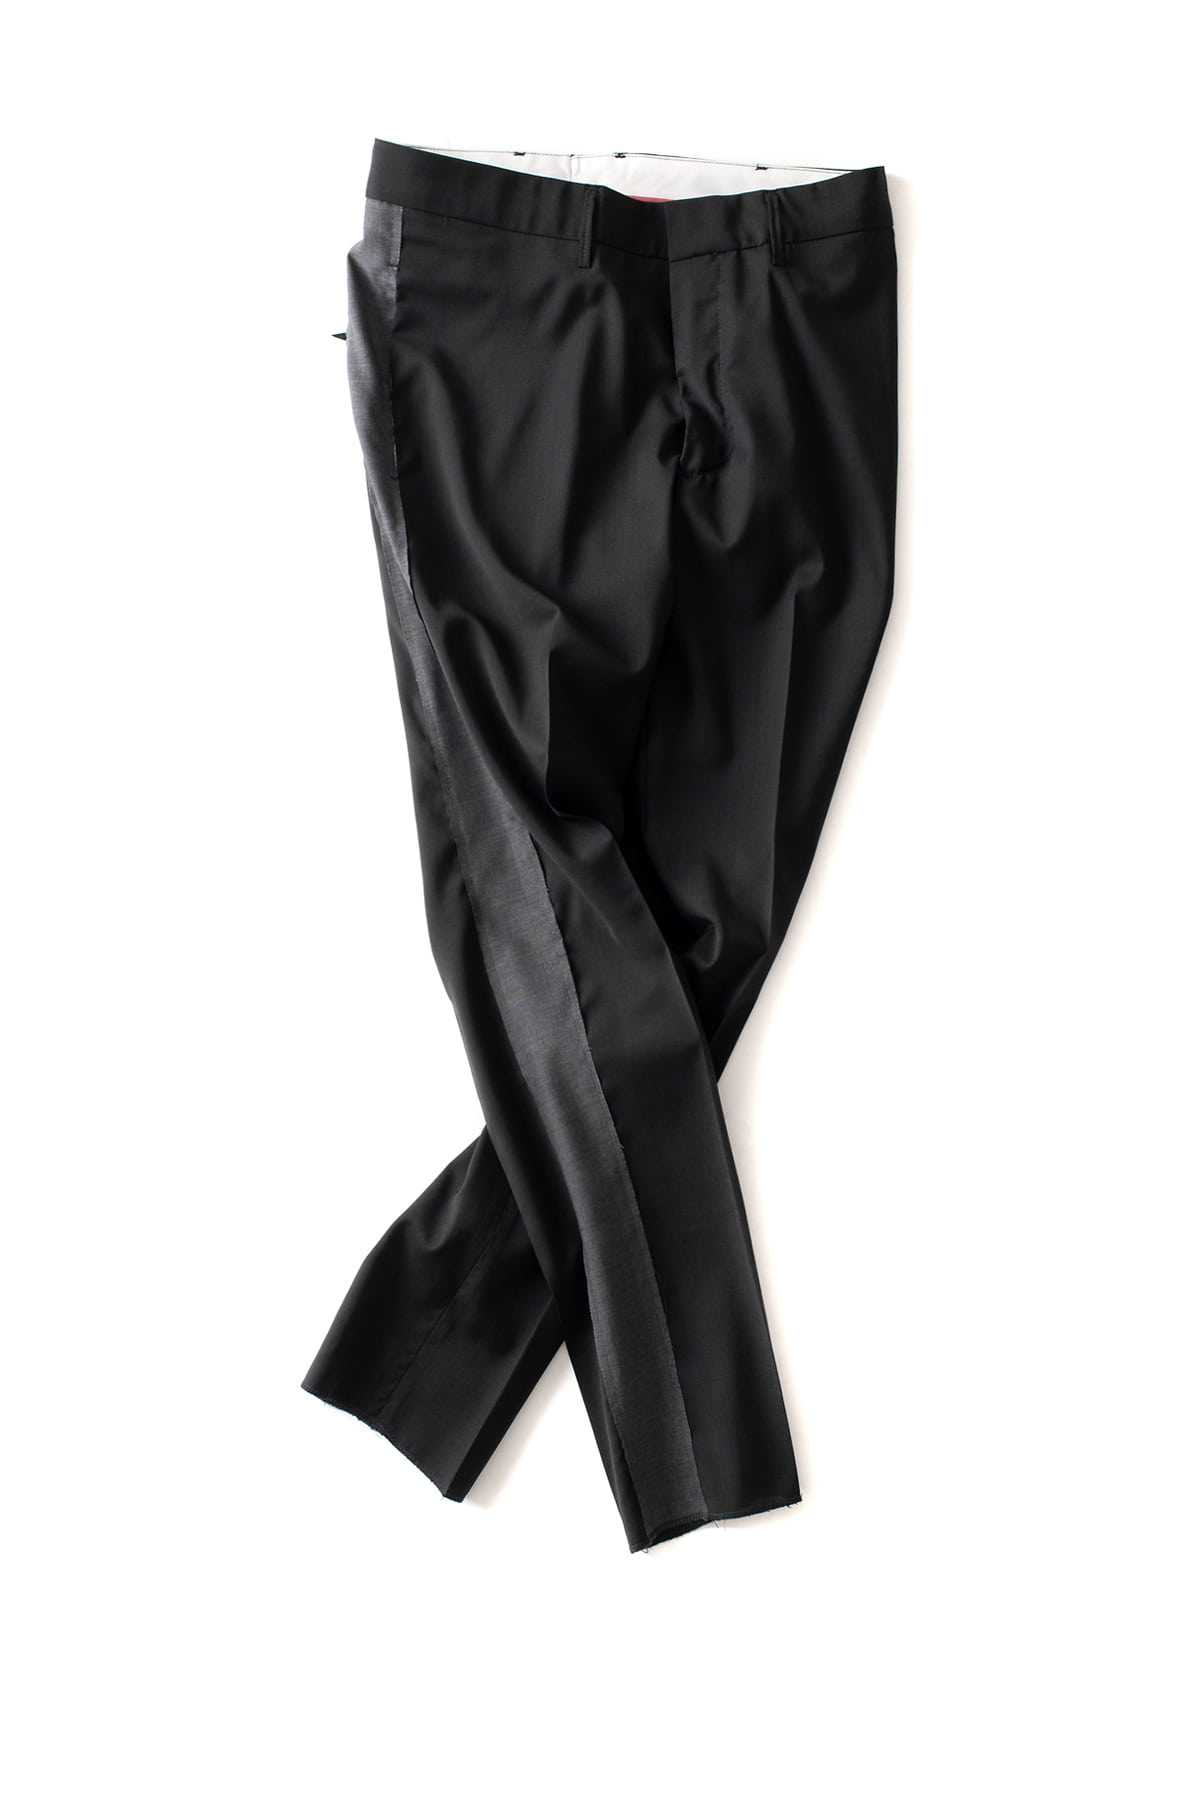 THE EDITOR : Woven Man Trousers 4495 (Black)